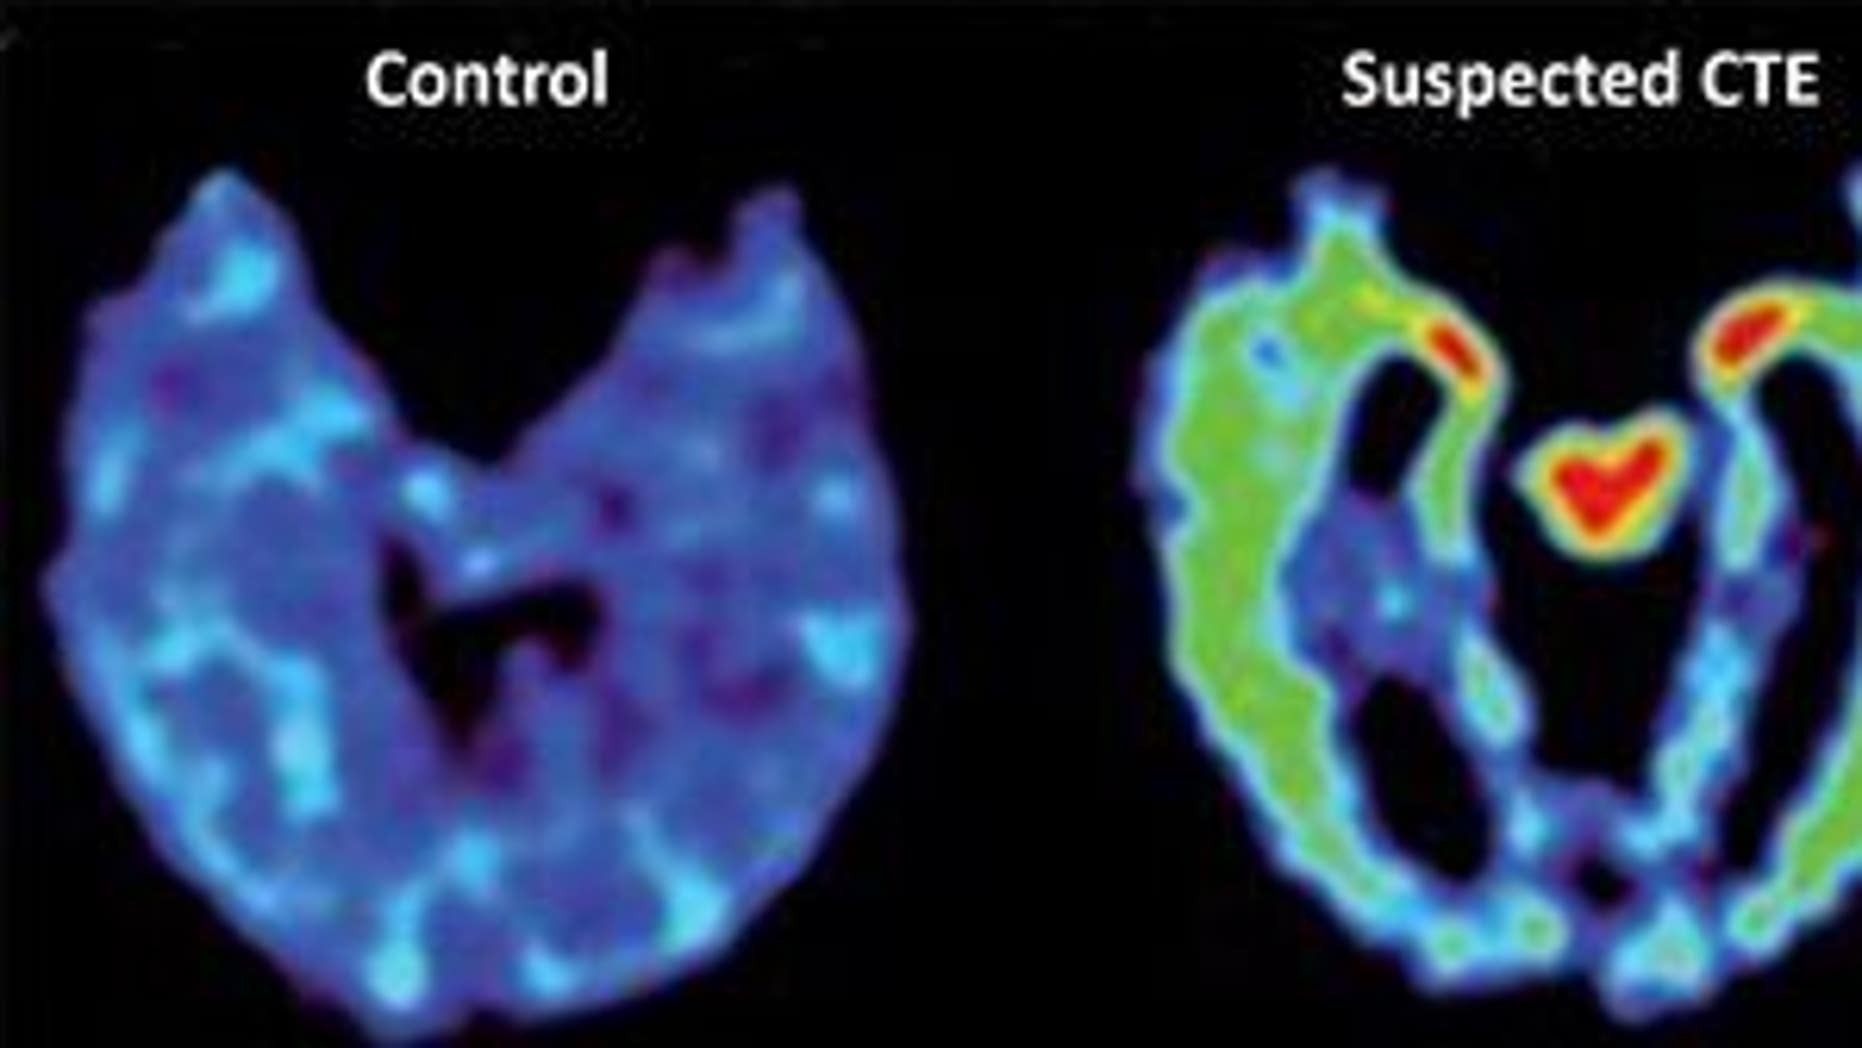 Scans of a normal brain, a brain with suspected CTE, and a brain affected by Alzheimer's.